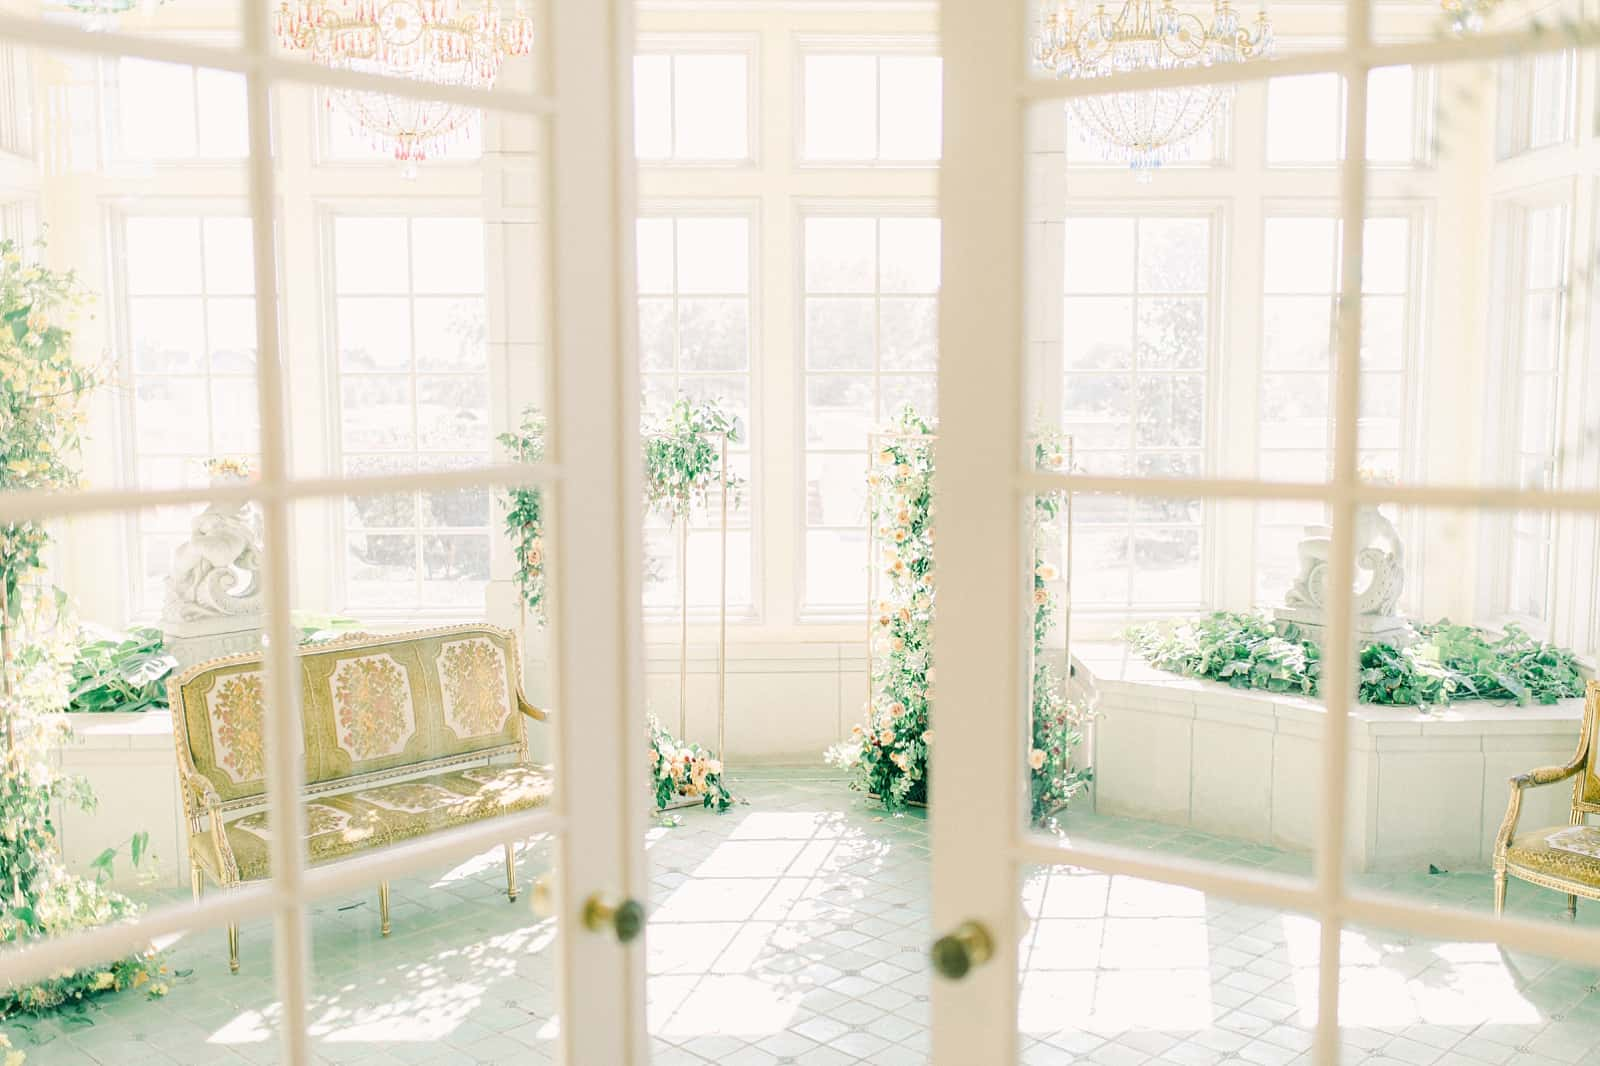 Destination wedding venue, double French doors into the green room